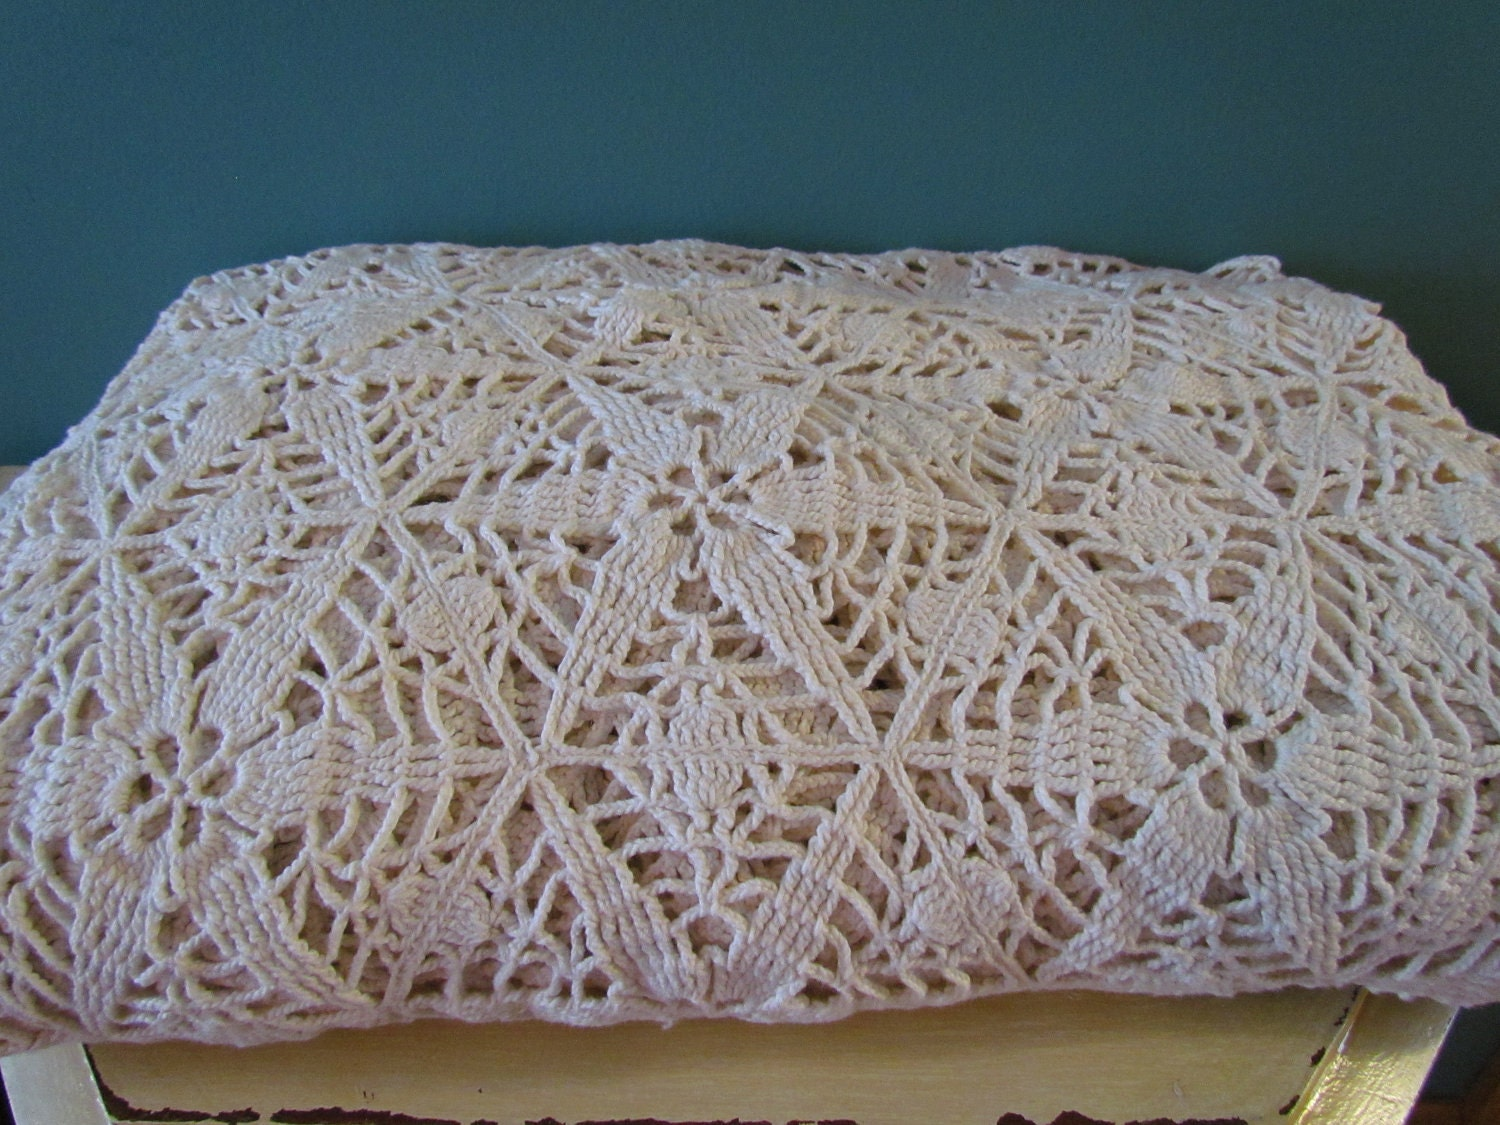 Crochet Bedspread : Beautiful Antique Crochet Bedspread by jleevintage on Etsy